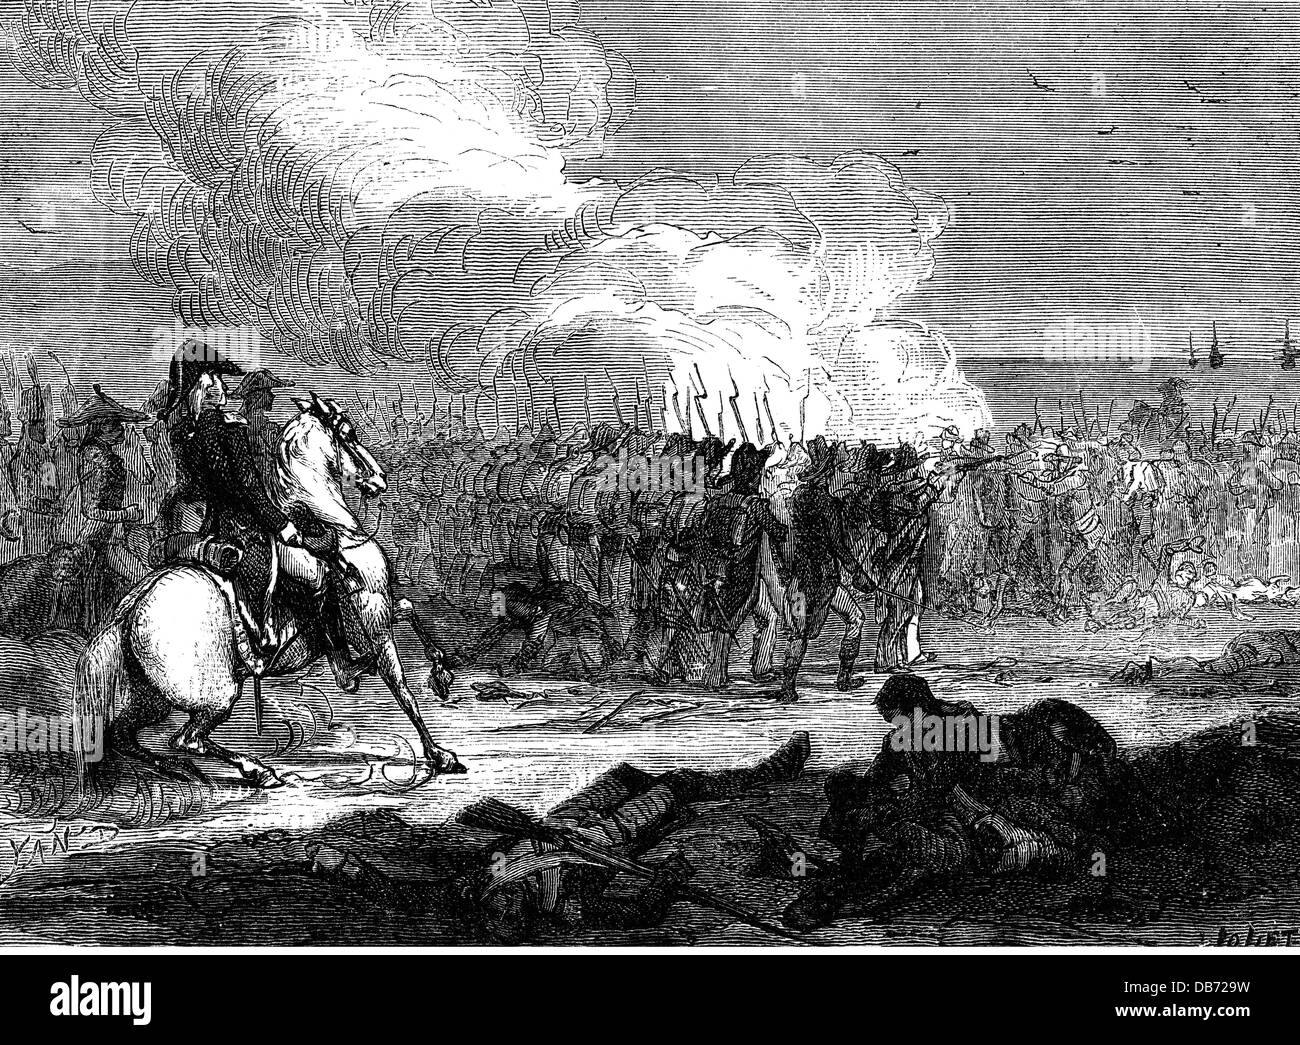 events, War in the Vendée 1793 - 1796, skirmish between Republican troops and insurgents, 1793, wood engraving, Stock Photo